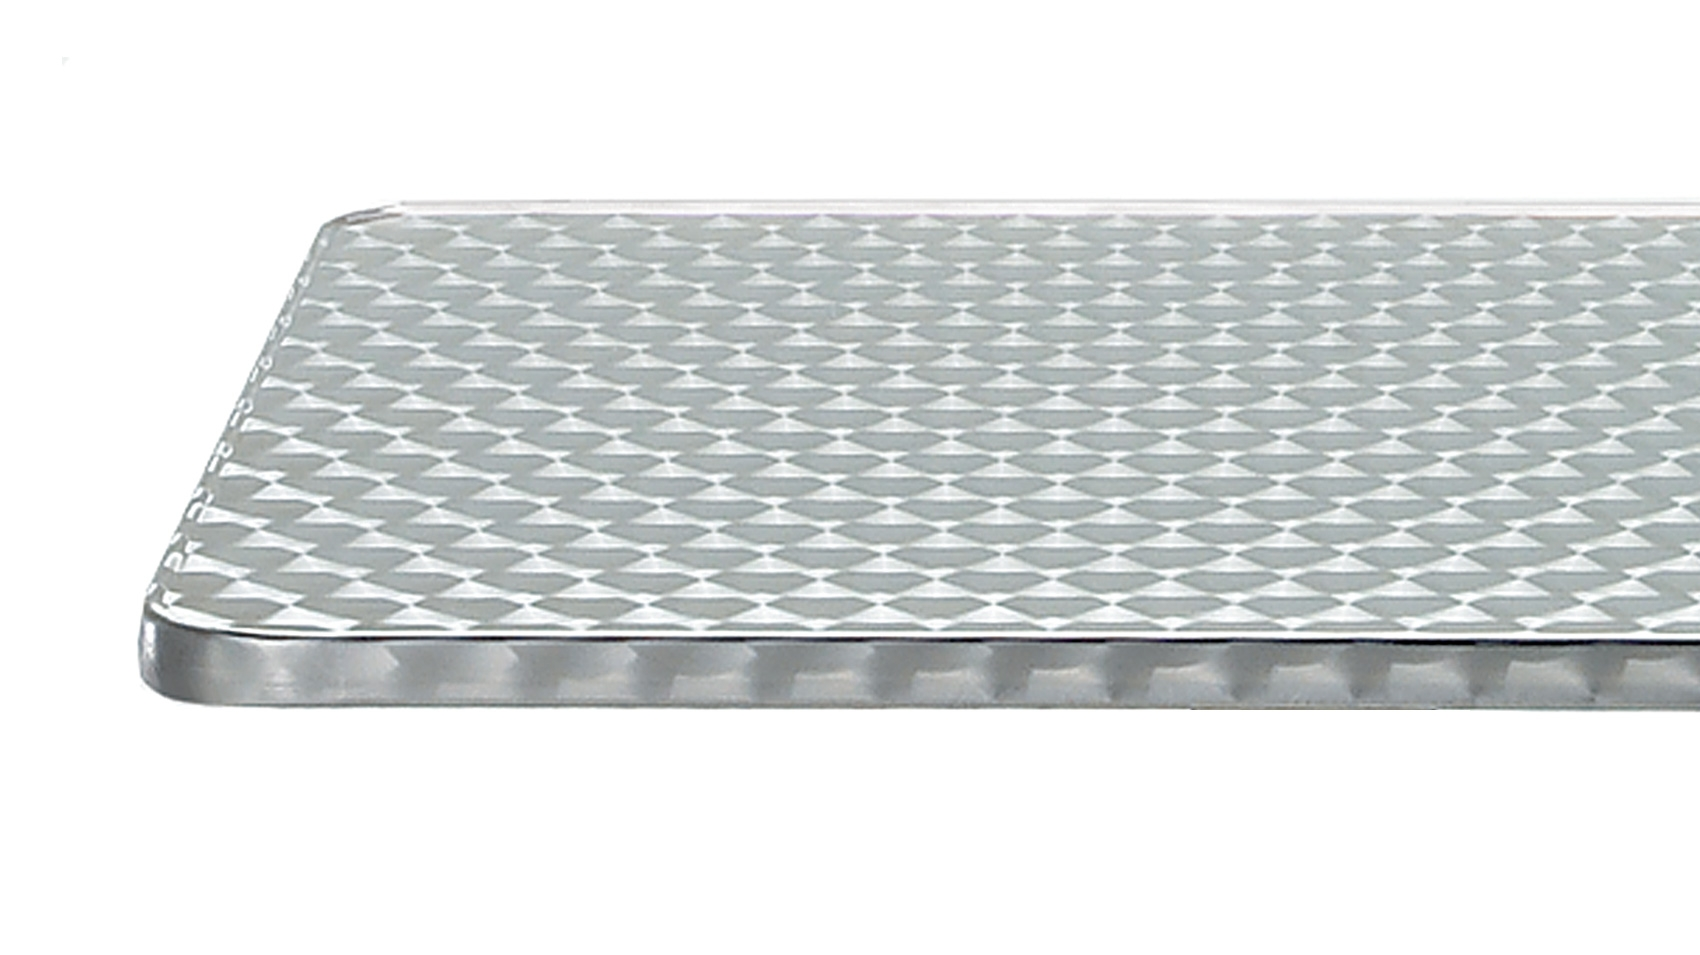 Stainless Steel Top Ofs Brands